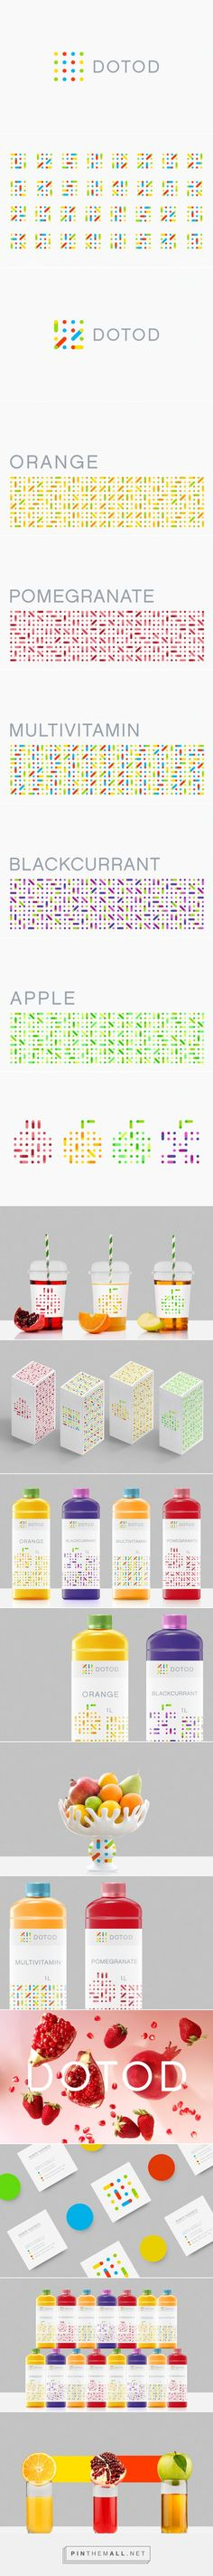 DOTOD #fruitjuice #packaging designed by Ramin Nasibov - http://www.packagingoftheworld.com/2015/07/dotod.html